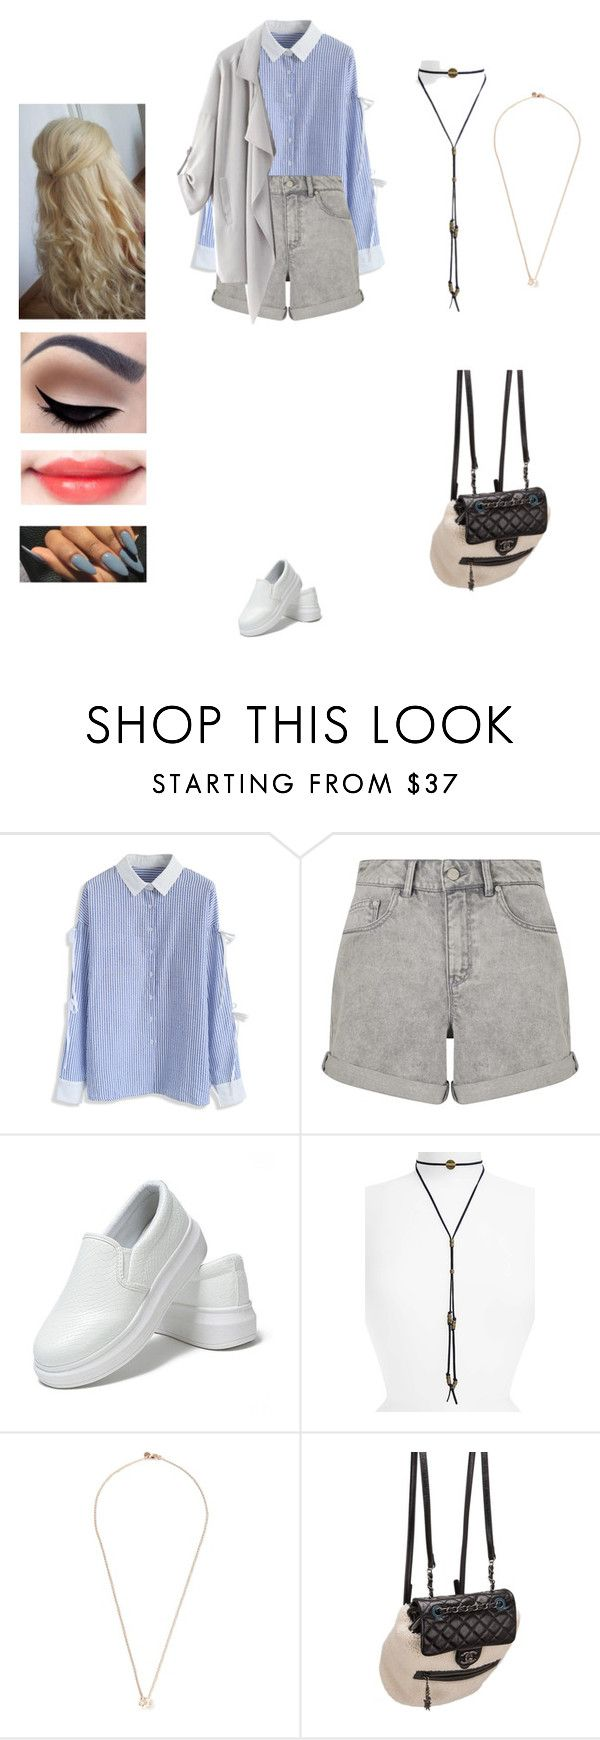 """Seventeen - fast pace"" by kyndraxsvt ❤ liked on Polyvore featuring Chicwish, WÃ¥ven, Sole Society, Shaun Leane and Chanel"